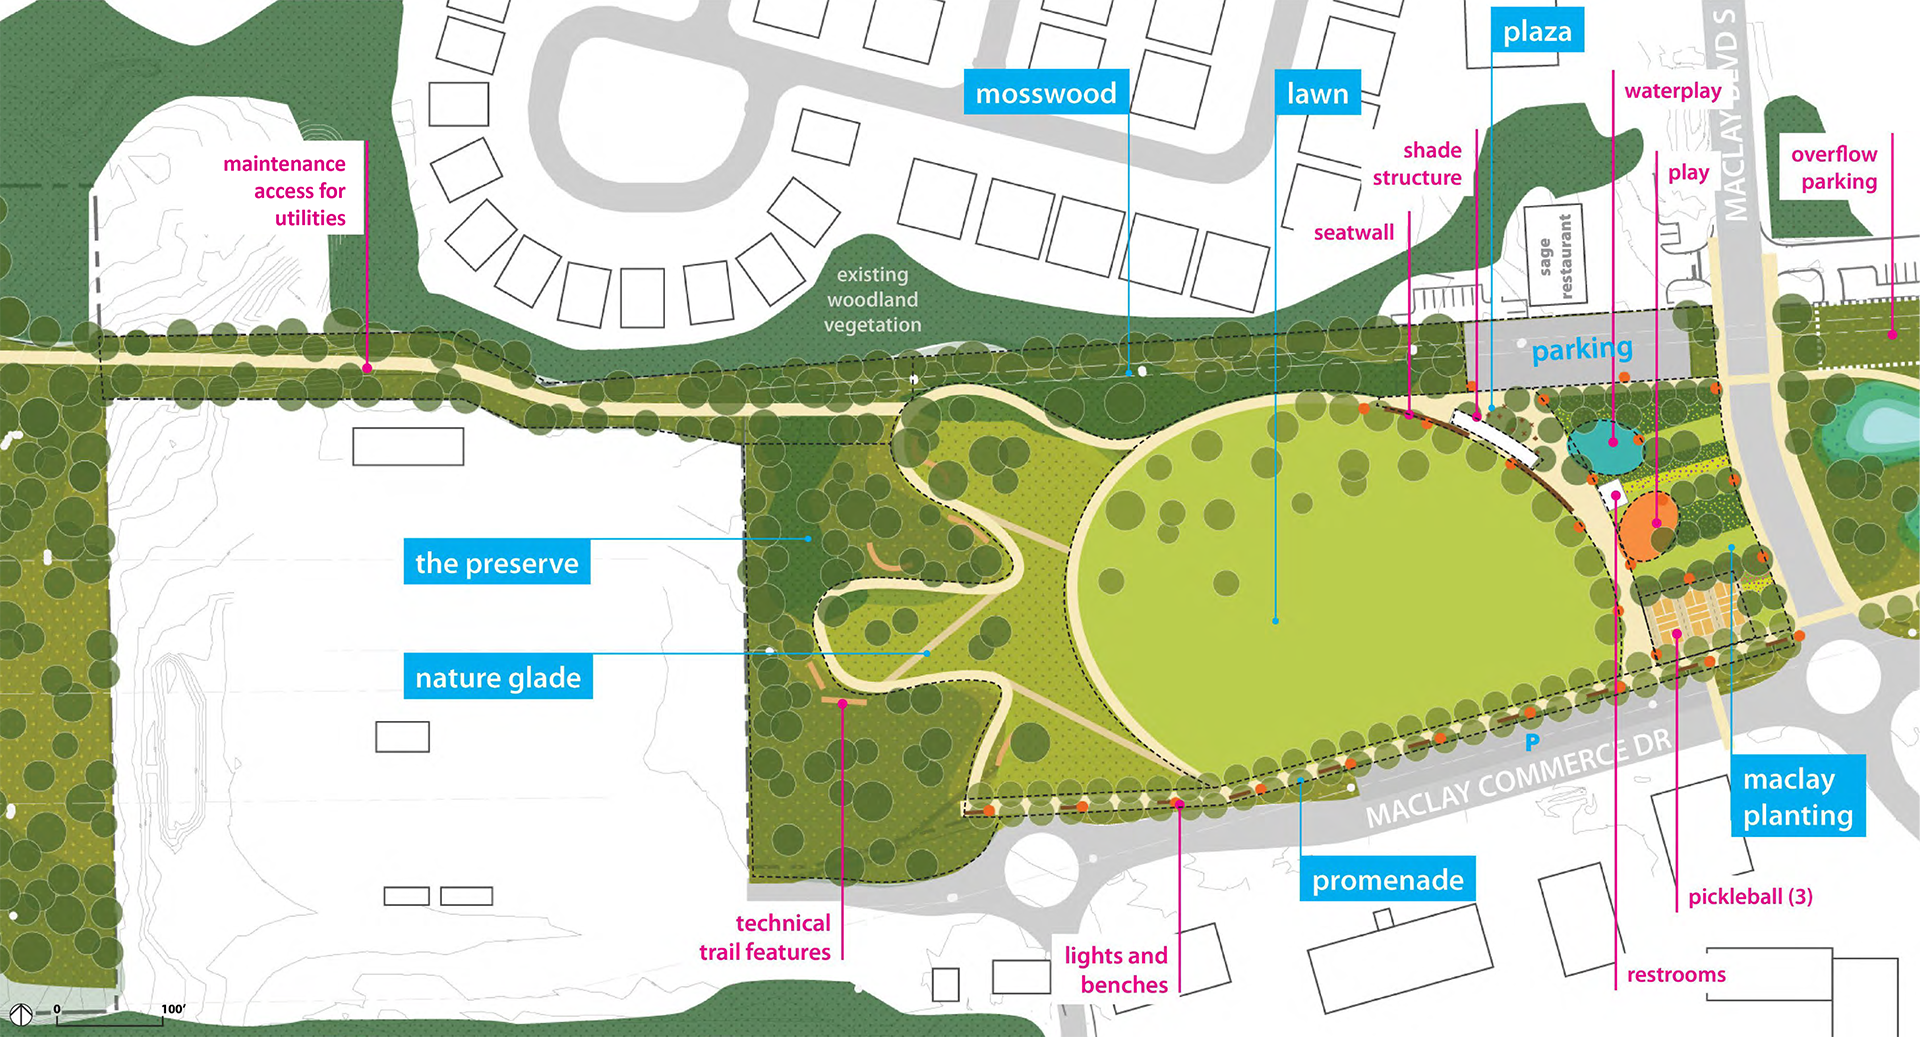 Concept Plan of the Park Area